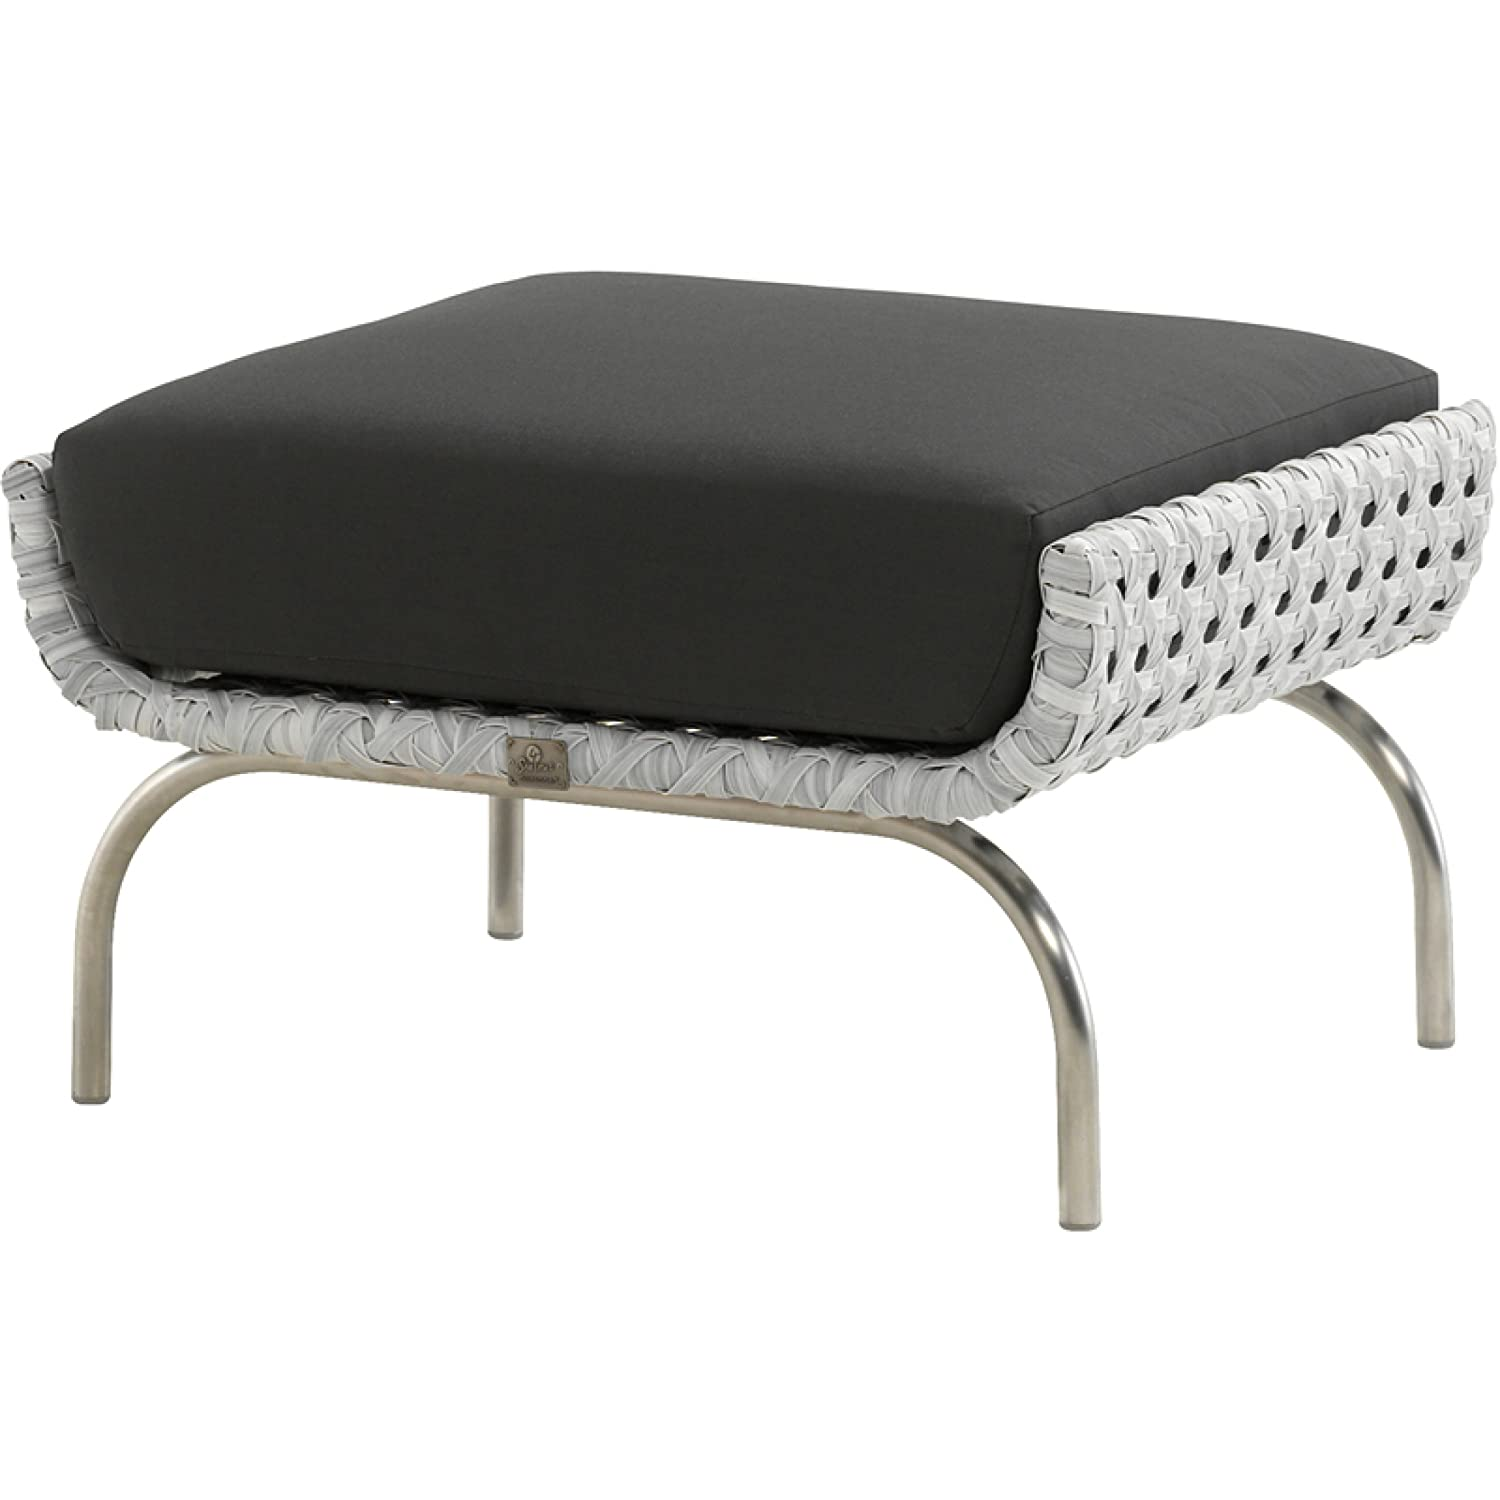 4Seasons Outdoor Luton Fußhocker Polyrattan pearl inkl. Kissen Footstool